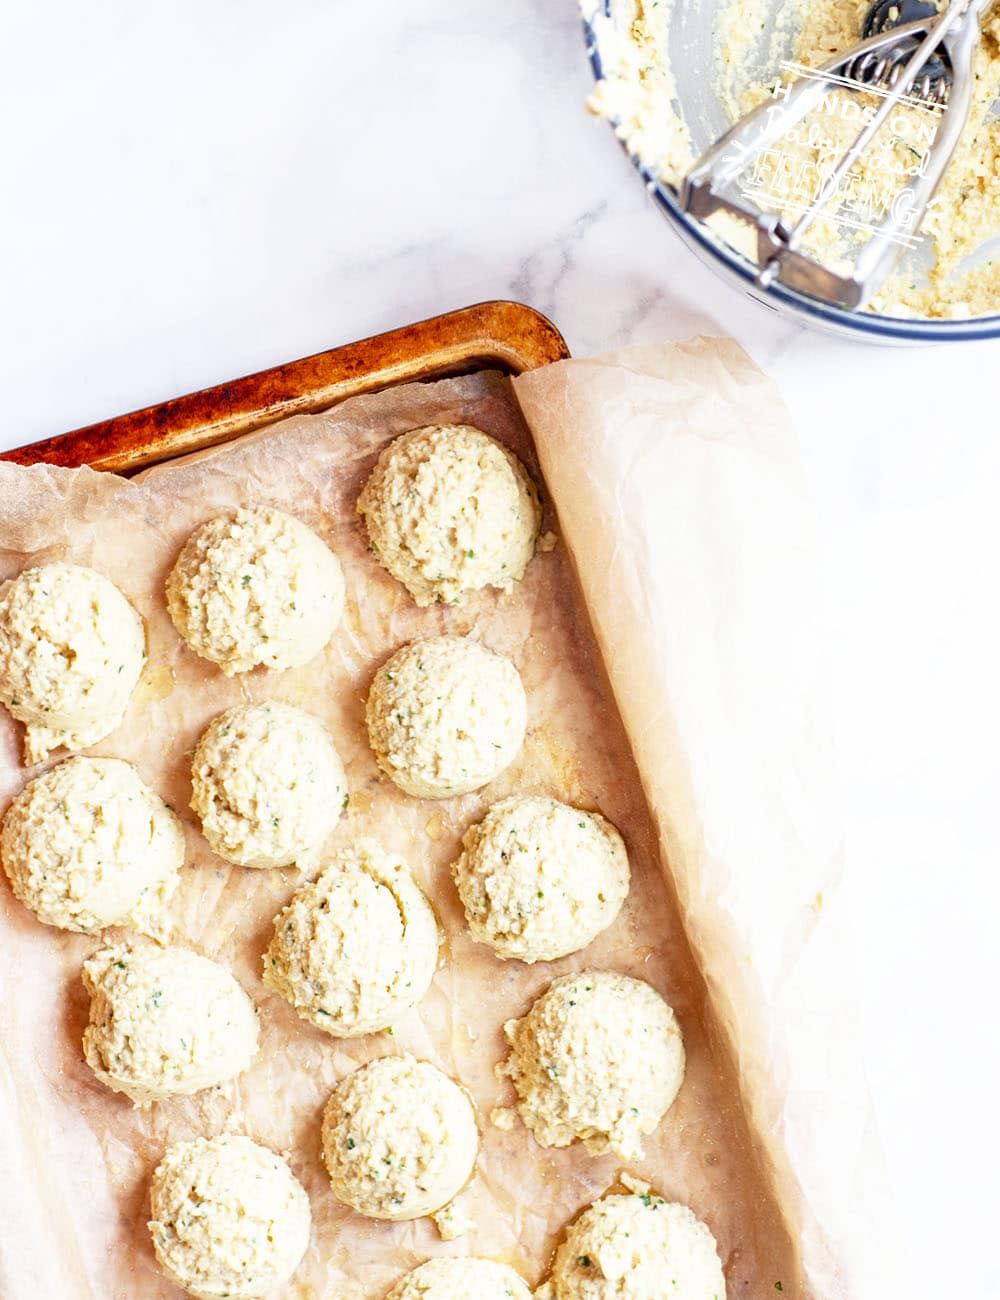 Baked chickpea meatless meatballs, super easy and quick kids food.